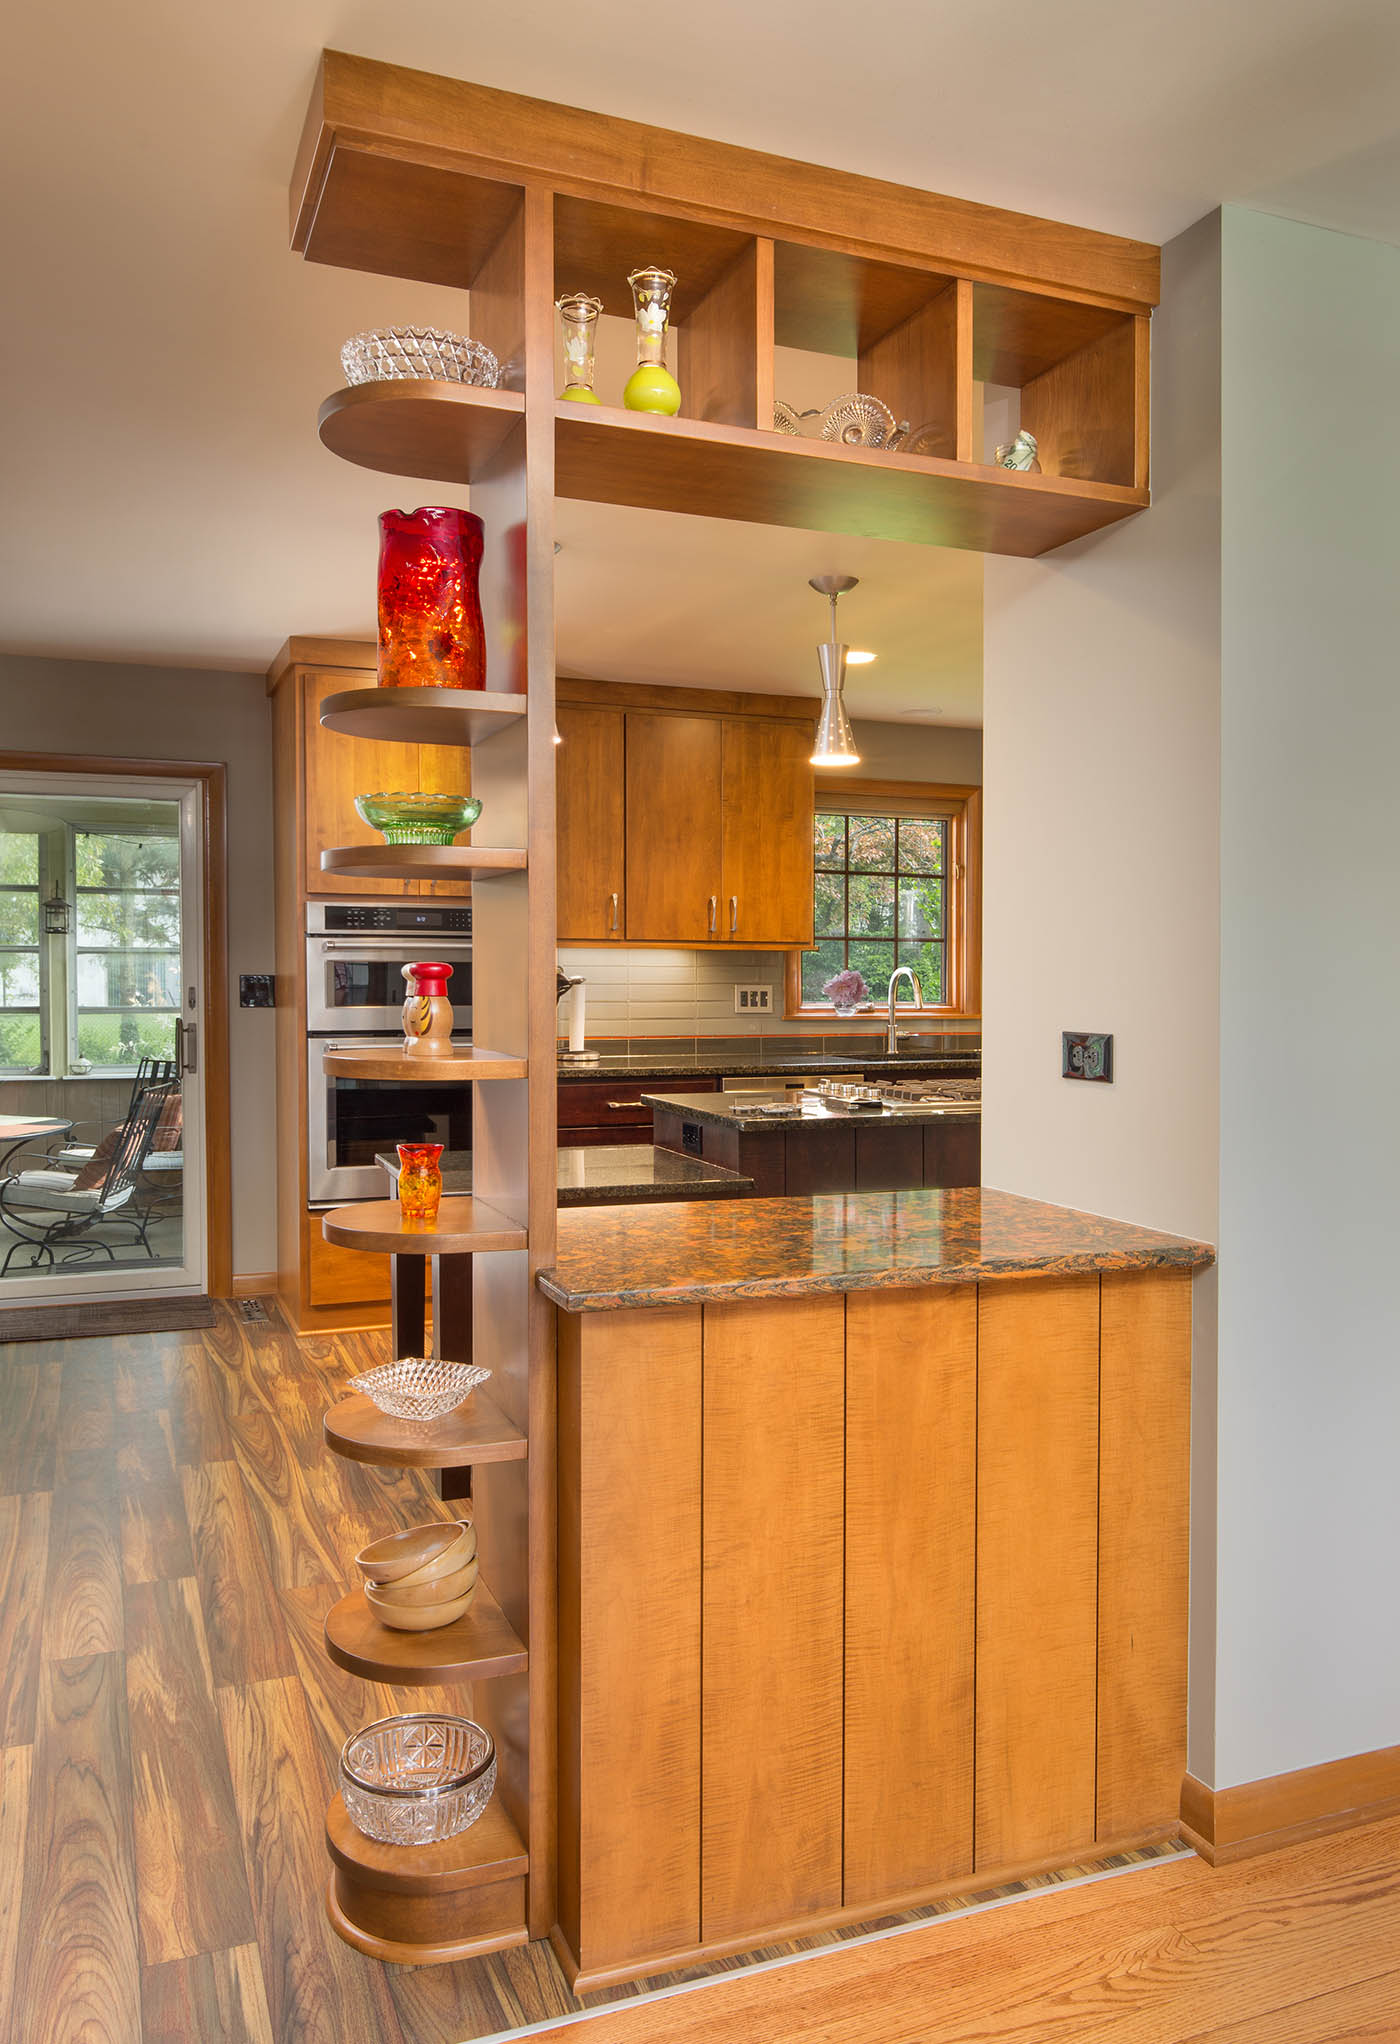 Kitchen Mid Century Modern Wood Shelves - The Cleary Company